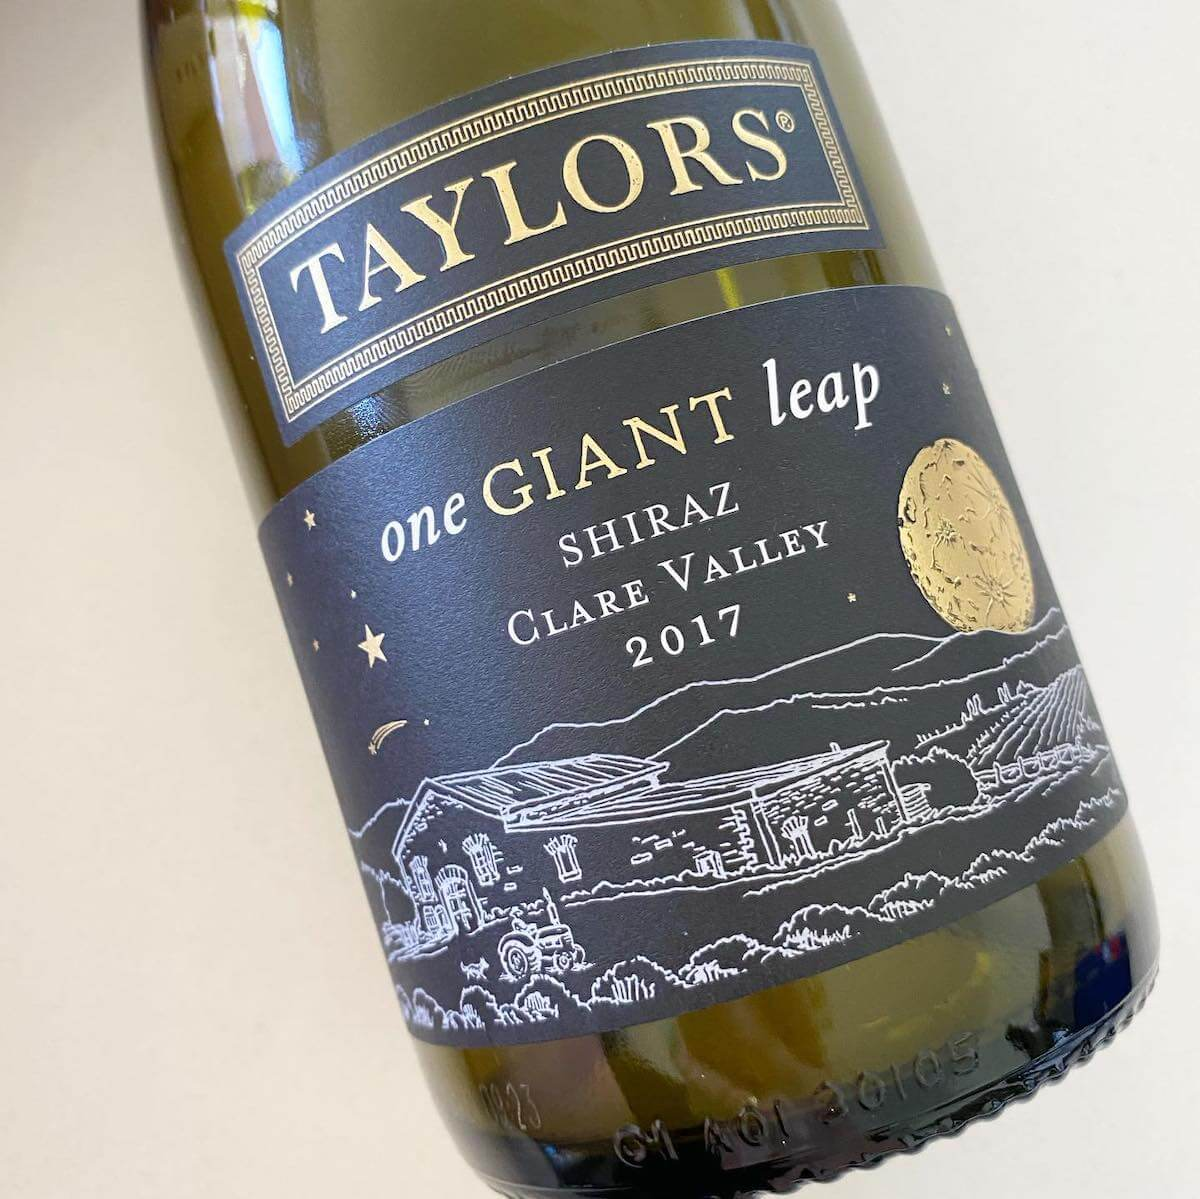 Taylors One Giant Leap 2017 Shiraz – Clare Valley